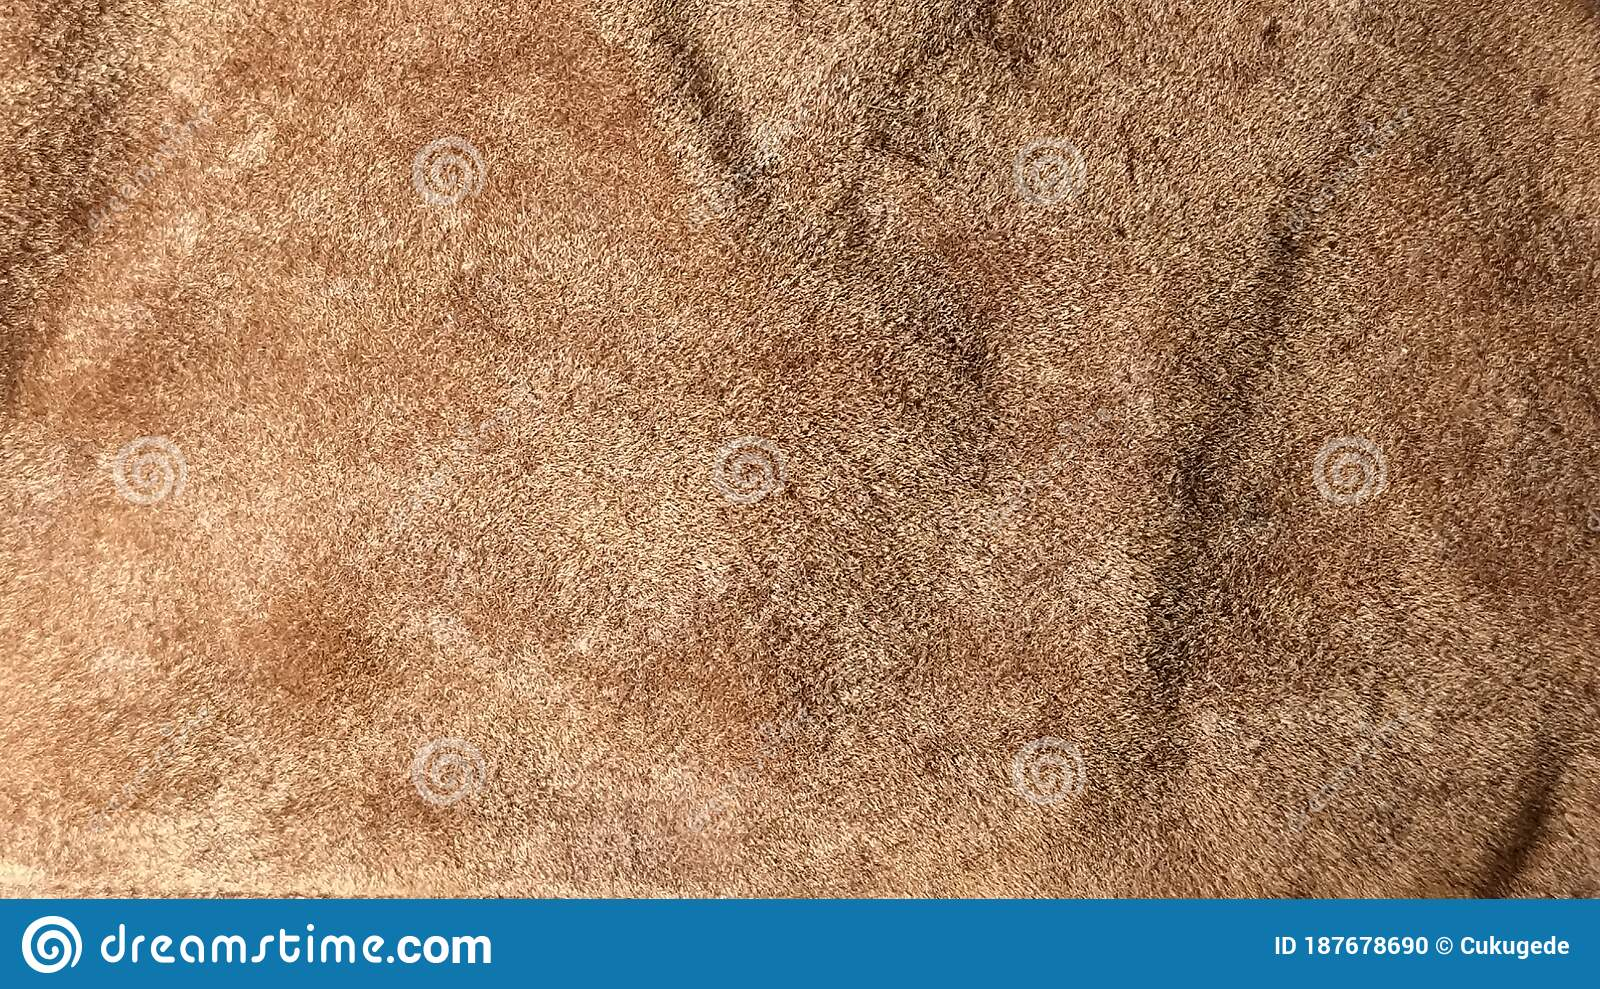 Brown And Beige Velvet Close Up Velvet Fabric Texture Irregularities And Overflows Of Light Deep Rich Chocolate Couloured Stock Photo Image Of Natural Elegant 187678690